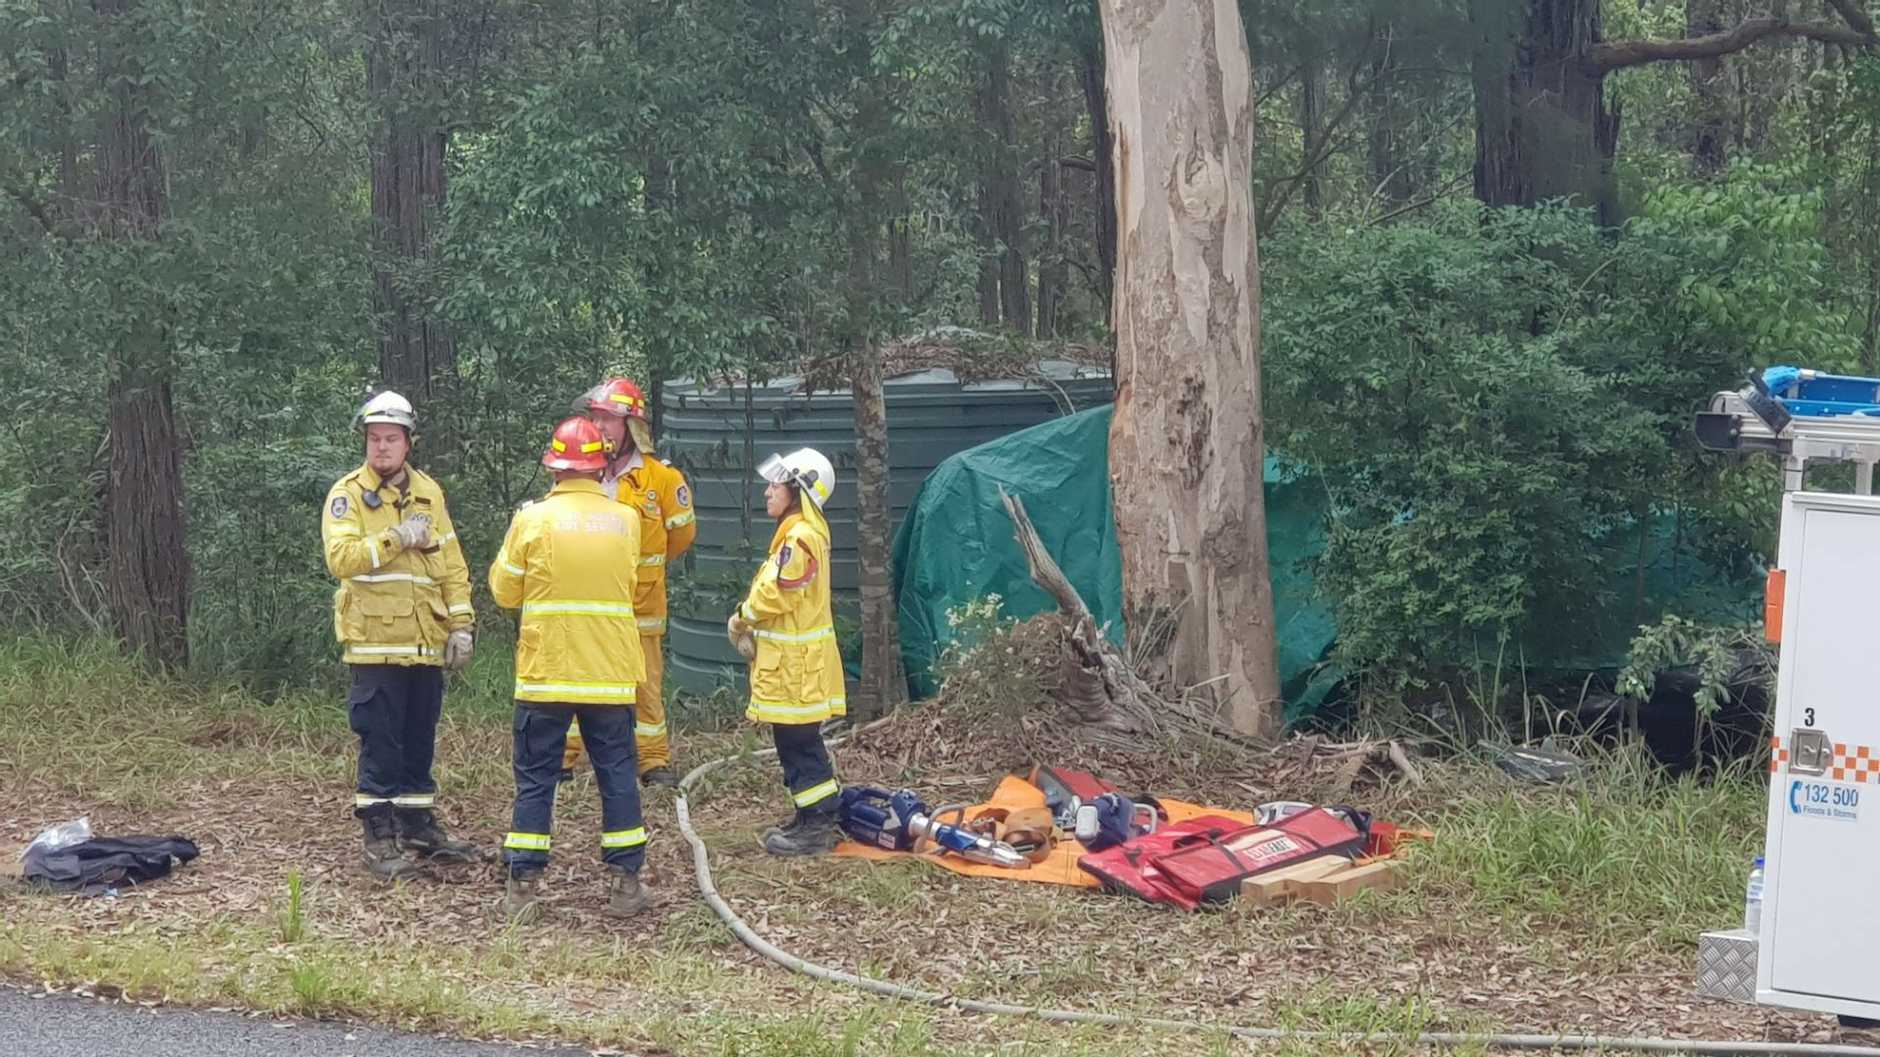 A woman has died and two people have suffered serious injuries after a fatal van rollover on Bucca Rd.